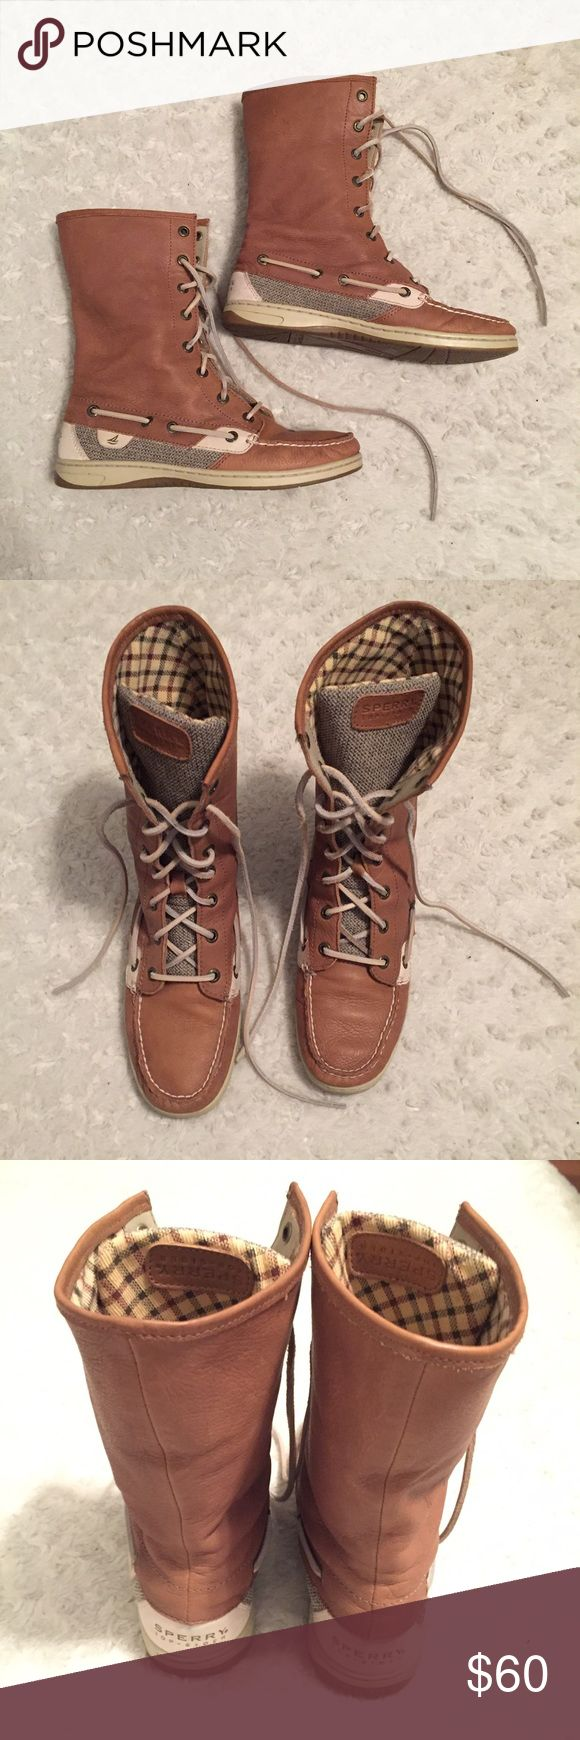 Sperry Top Sider lace up leather boots 7 Sperry Top Sider boots in great condition, only worn a few times. Tan soft leather with patterned inside that can be worn folded over. Sperry Top-Sider Shoes Lace Up Boots